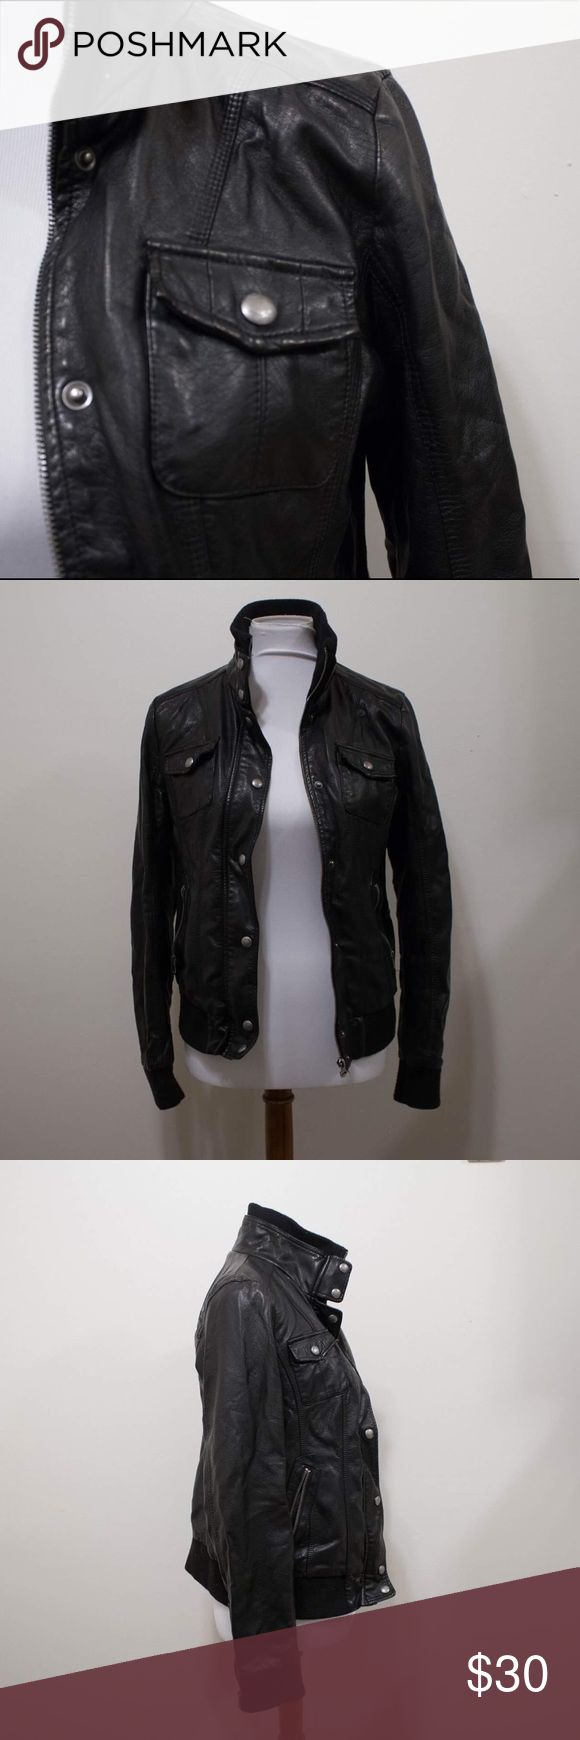 Guess L.A Leather Jacket In great condition! Every girl needs a black leather jacket in their closet and this one won't let you down!                                                           Brand: Guess LA         Size: M Guess Jackets & Coats